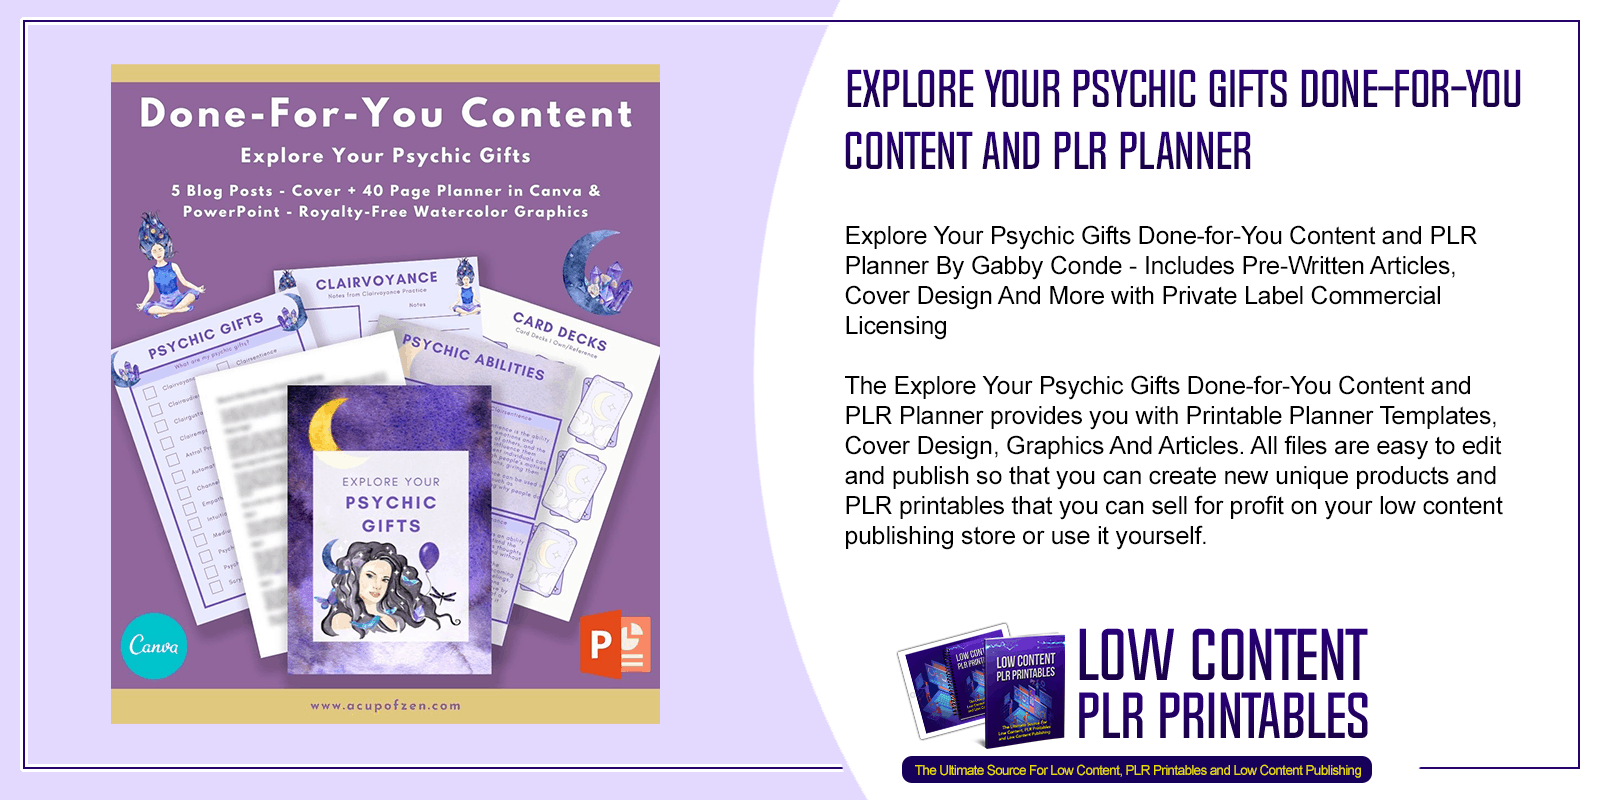 Explore Your Psychic Gifts Done for You Content and PLR Planner